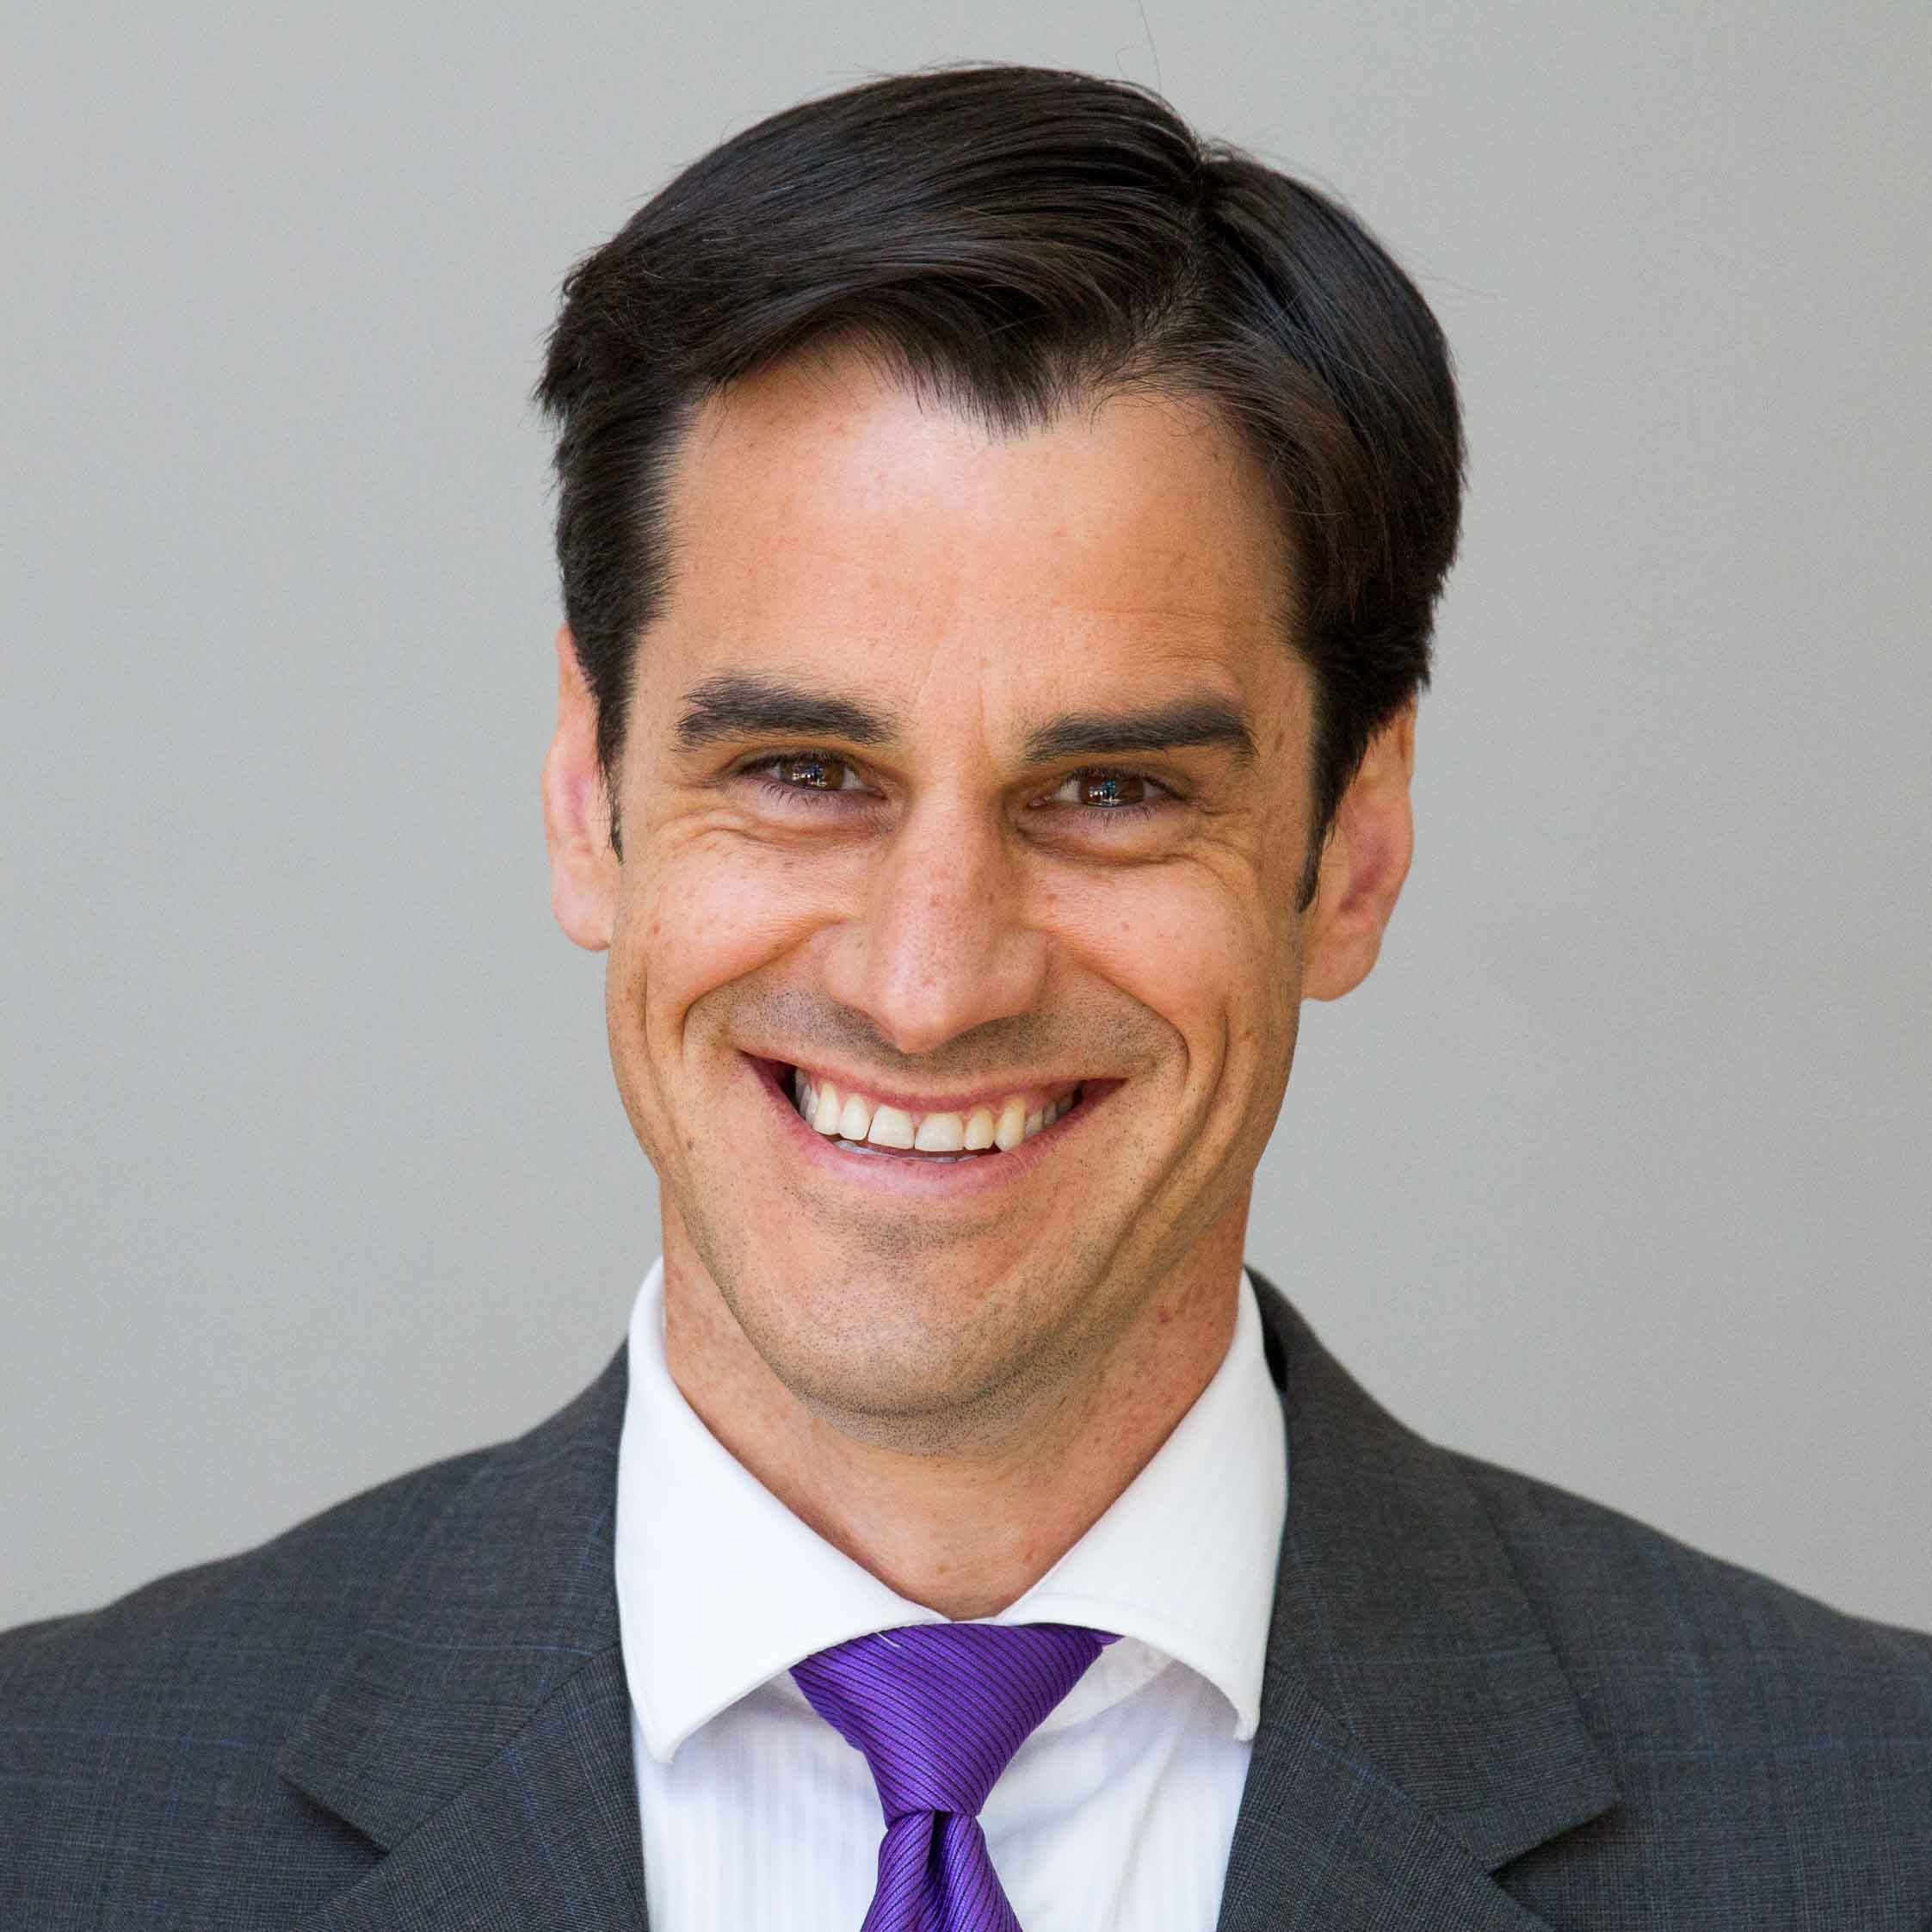 Mark McCrindle is a sought-after speaker, social researcher and the principal at McCrindle. He is the co-author of Work Wellbeing: Leading Thriving Teams in Changing Times.